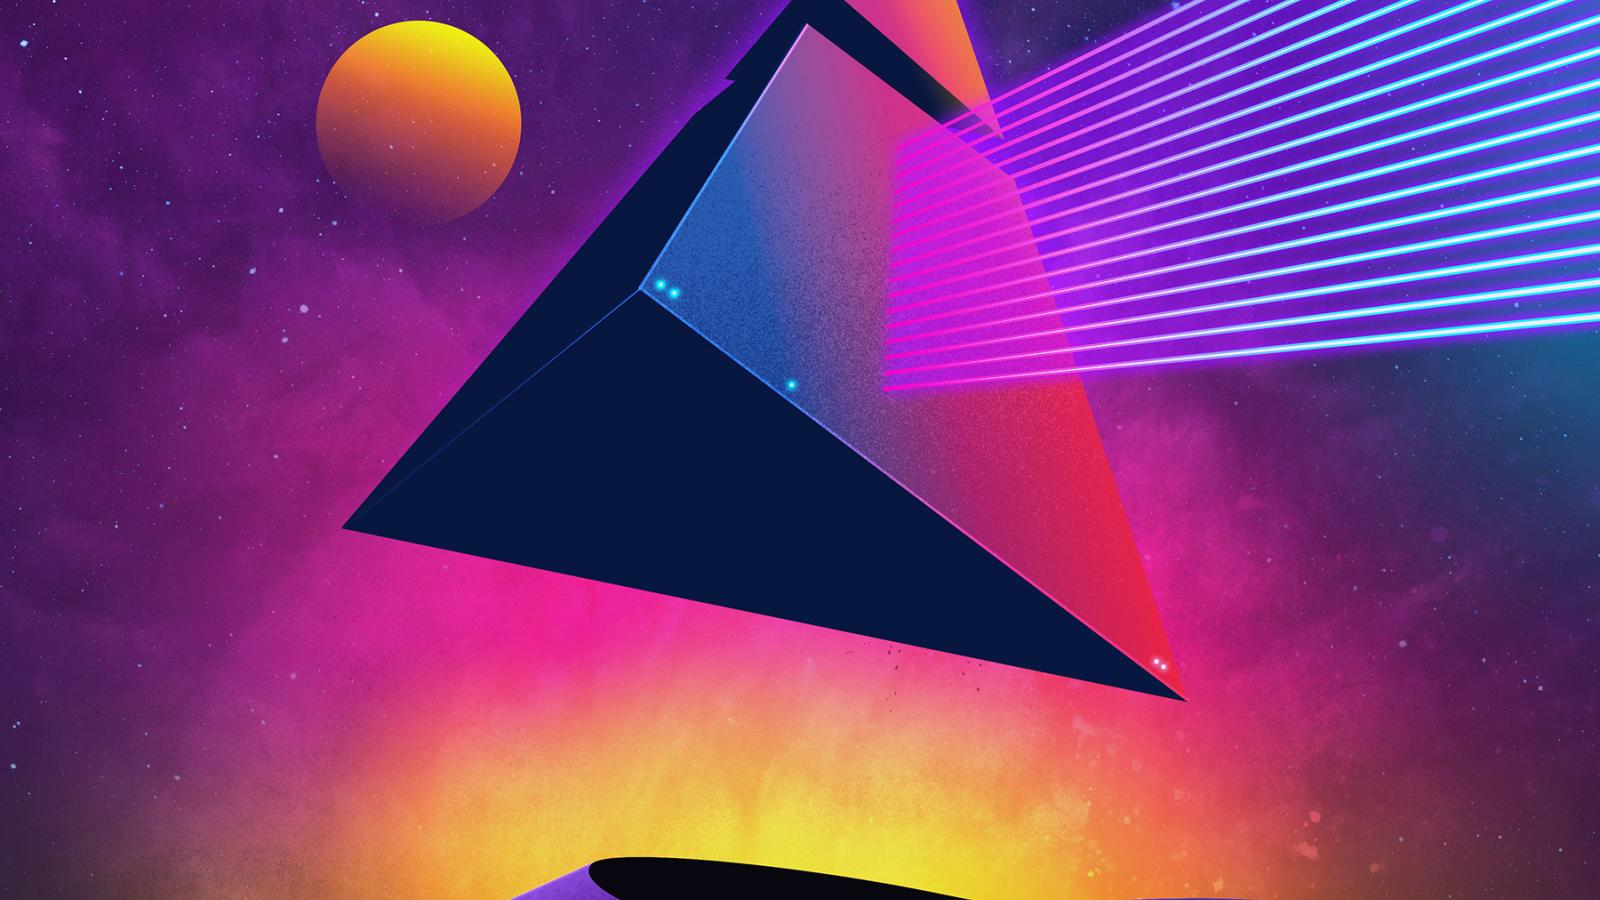 Signalnoise's New Illustration Works